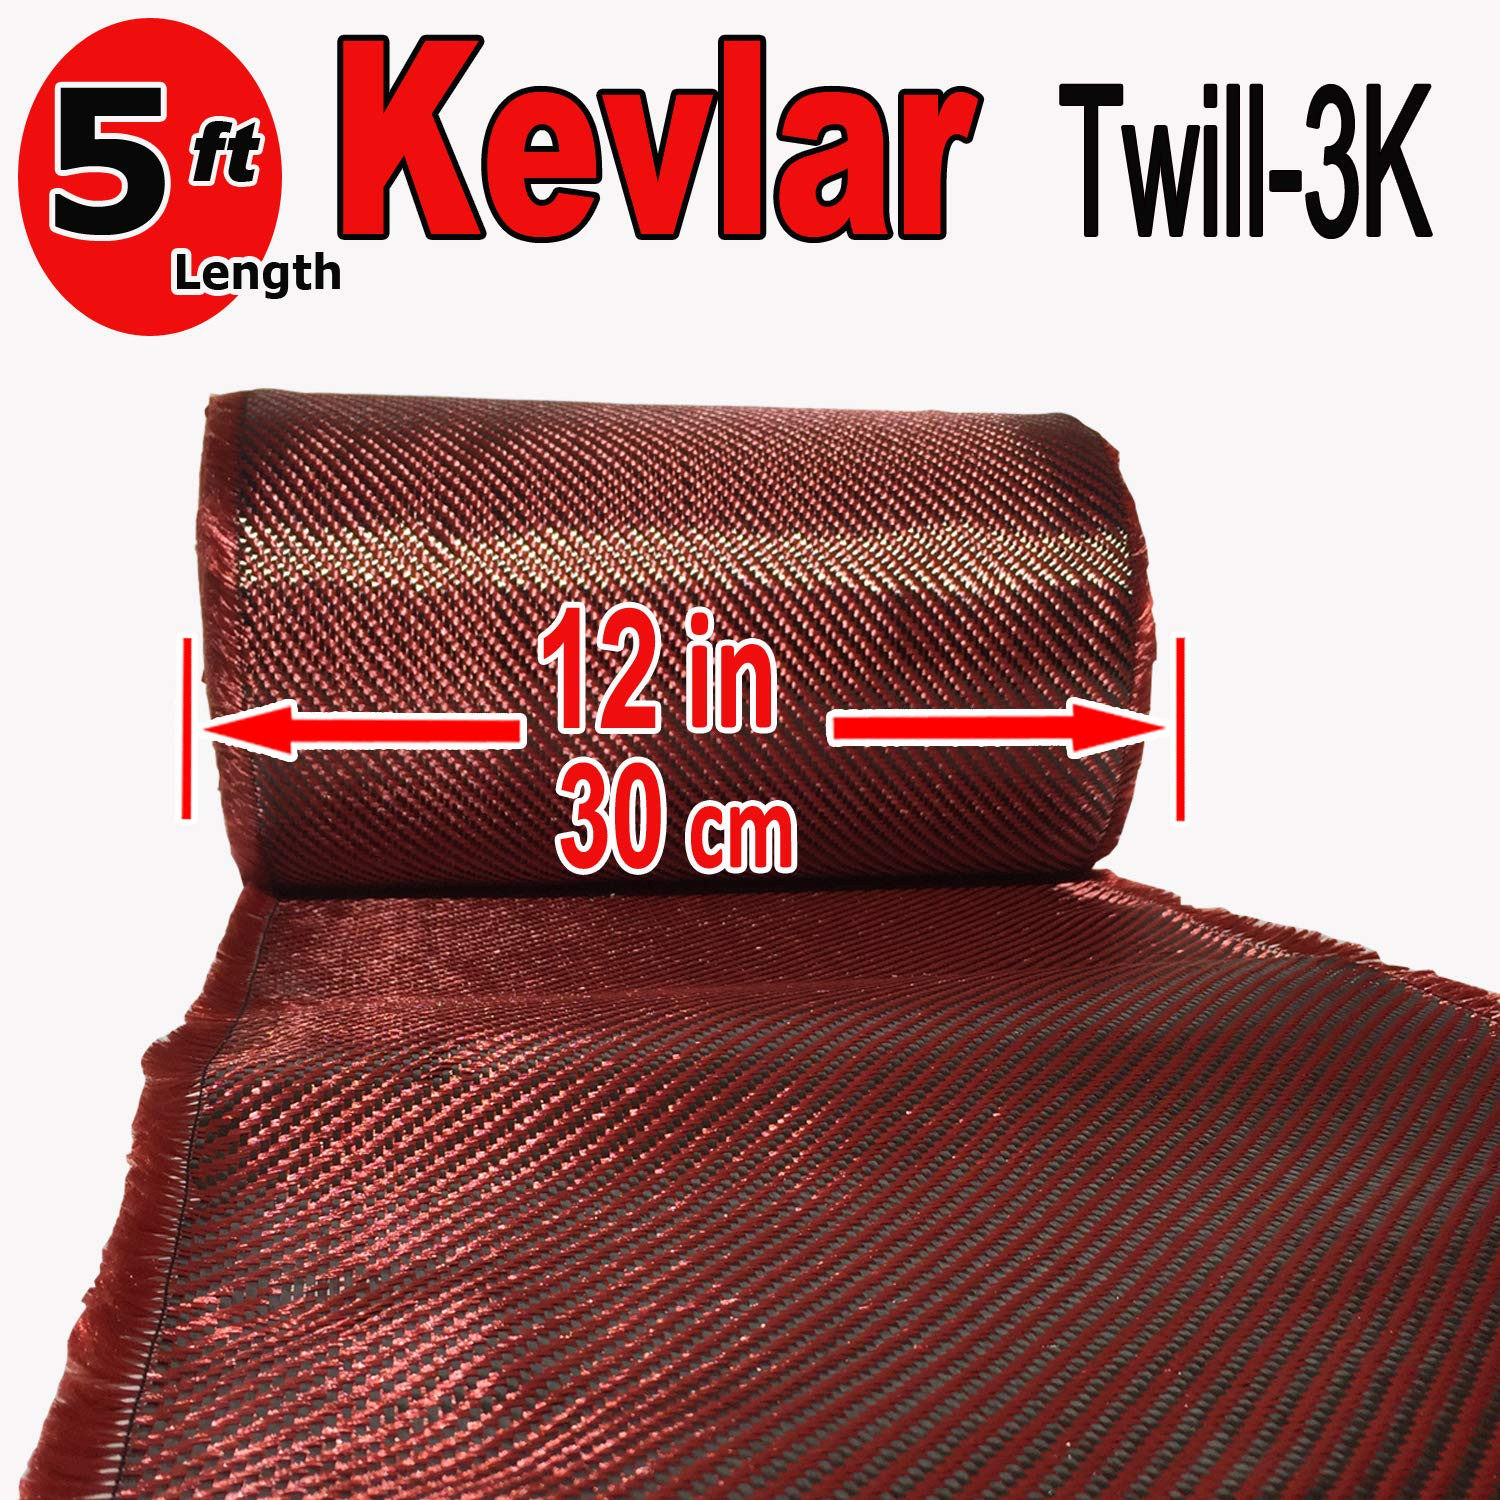 12'' x 5 FT Red- Kevlar FABRIC-2x2 Twill WEAVE-3K/220g by Unknown